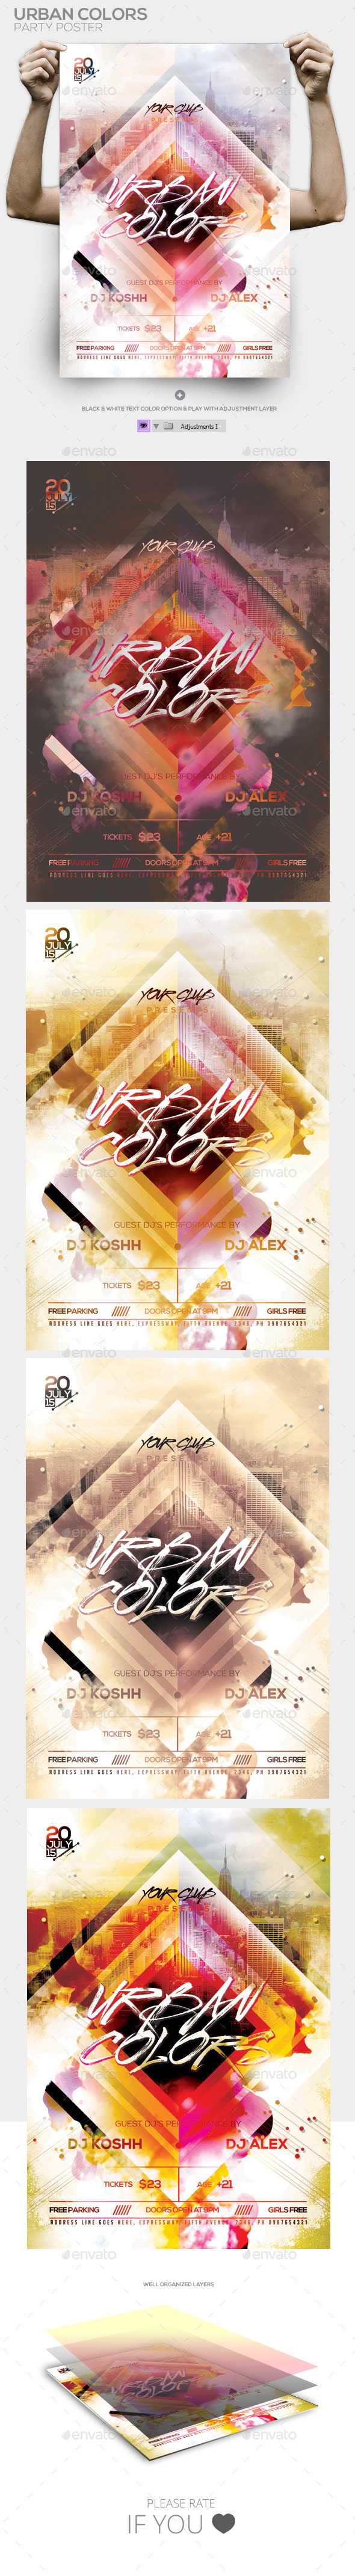 Urban Colors PSD Flyer / Poster Template - Clubs & Parties Events